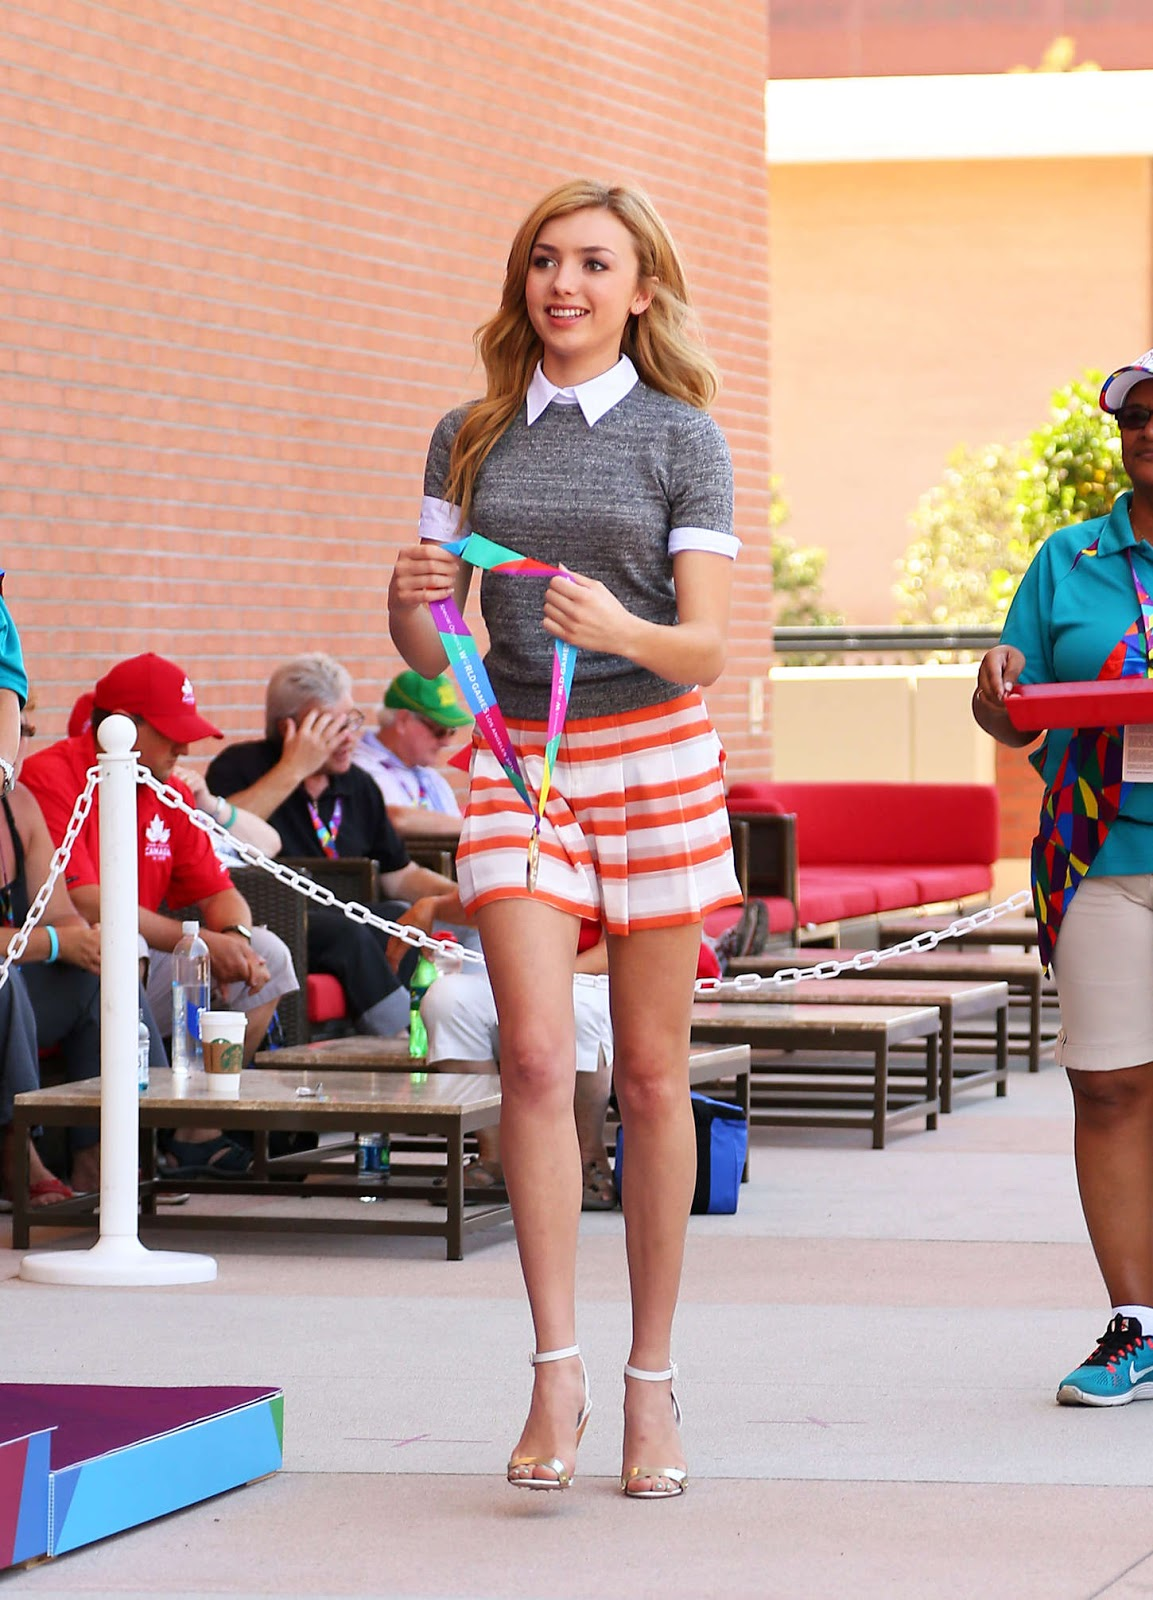 International Celebrities Peyton R List Special Olympics Track And Field Medal Ceremony In La